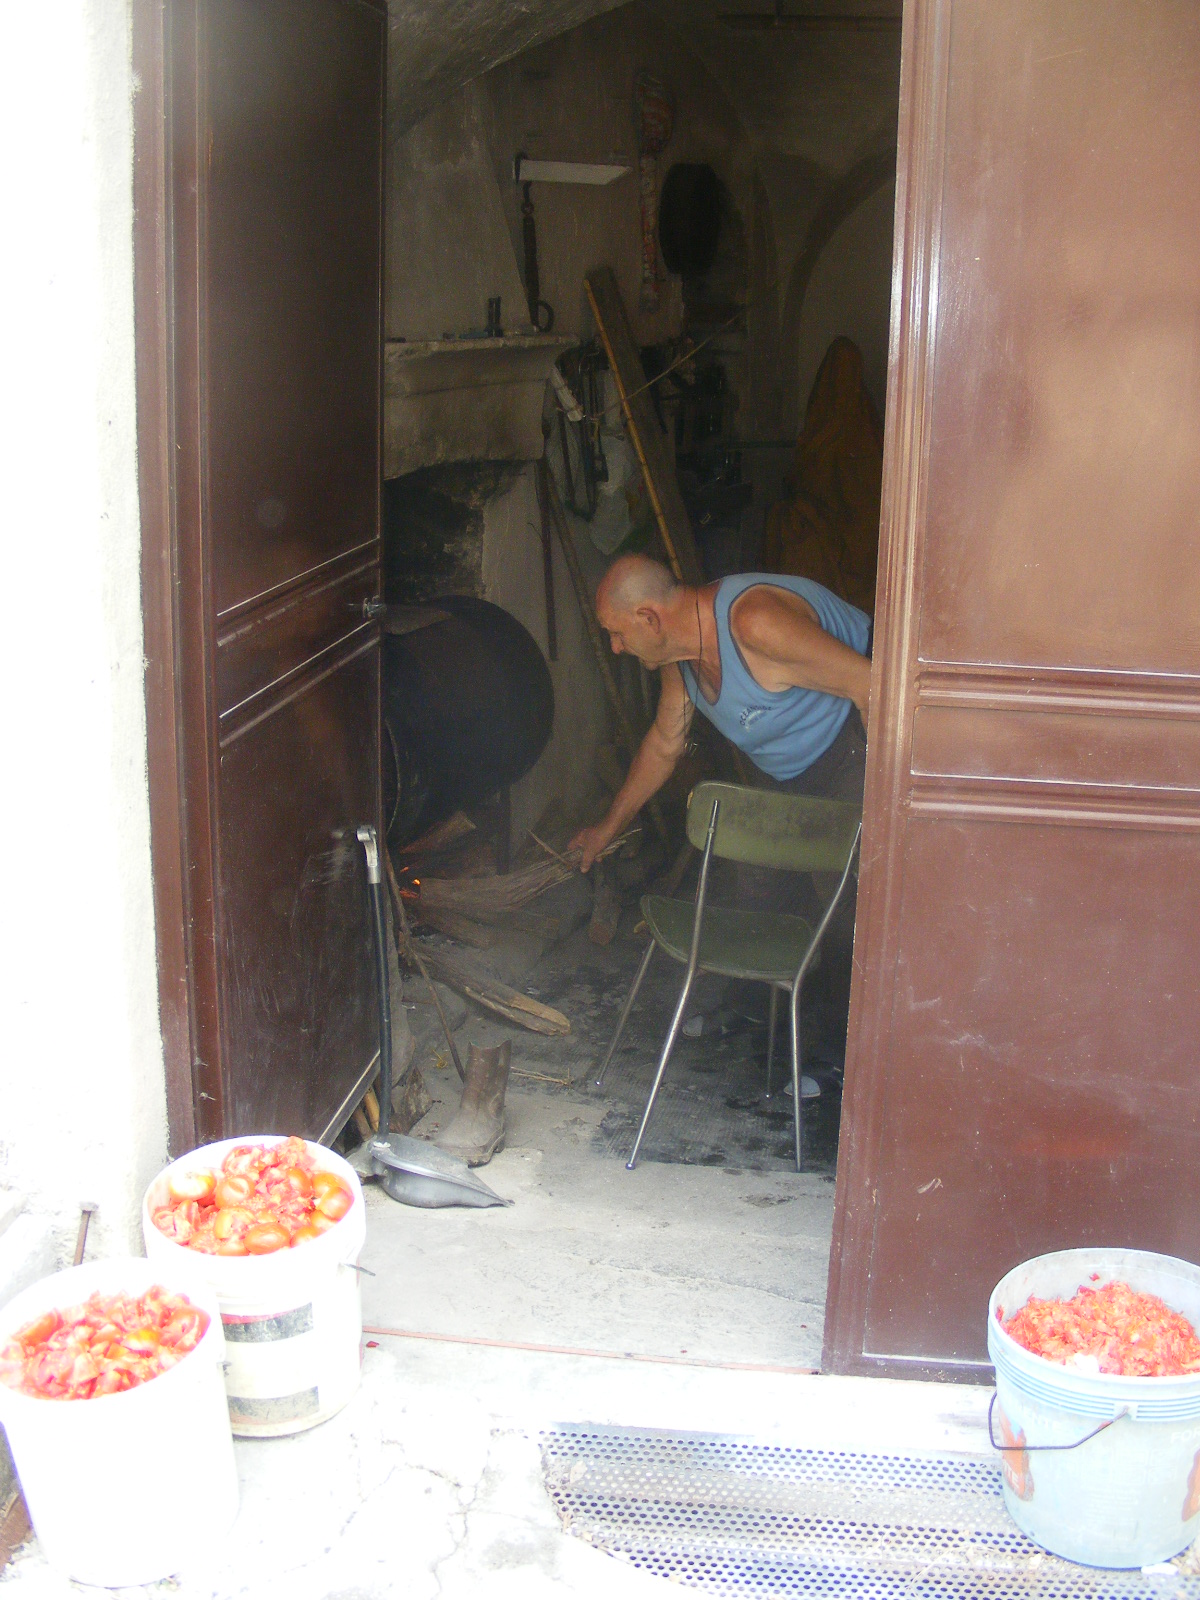 Antonio stewing tomatoes in an old oil barrel in his garage. Poor tomatoes.